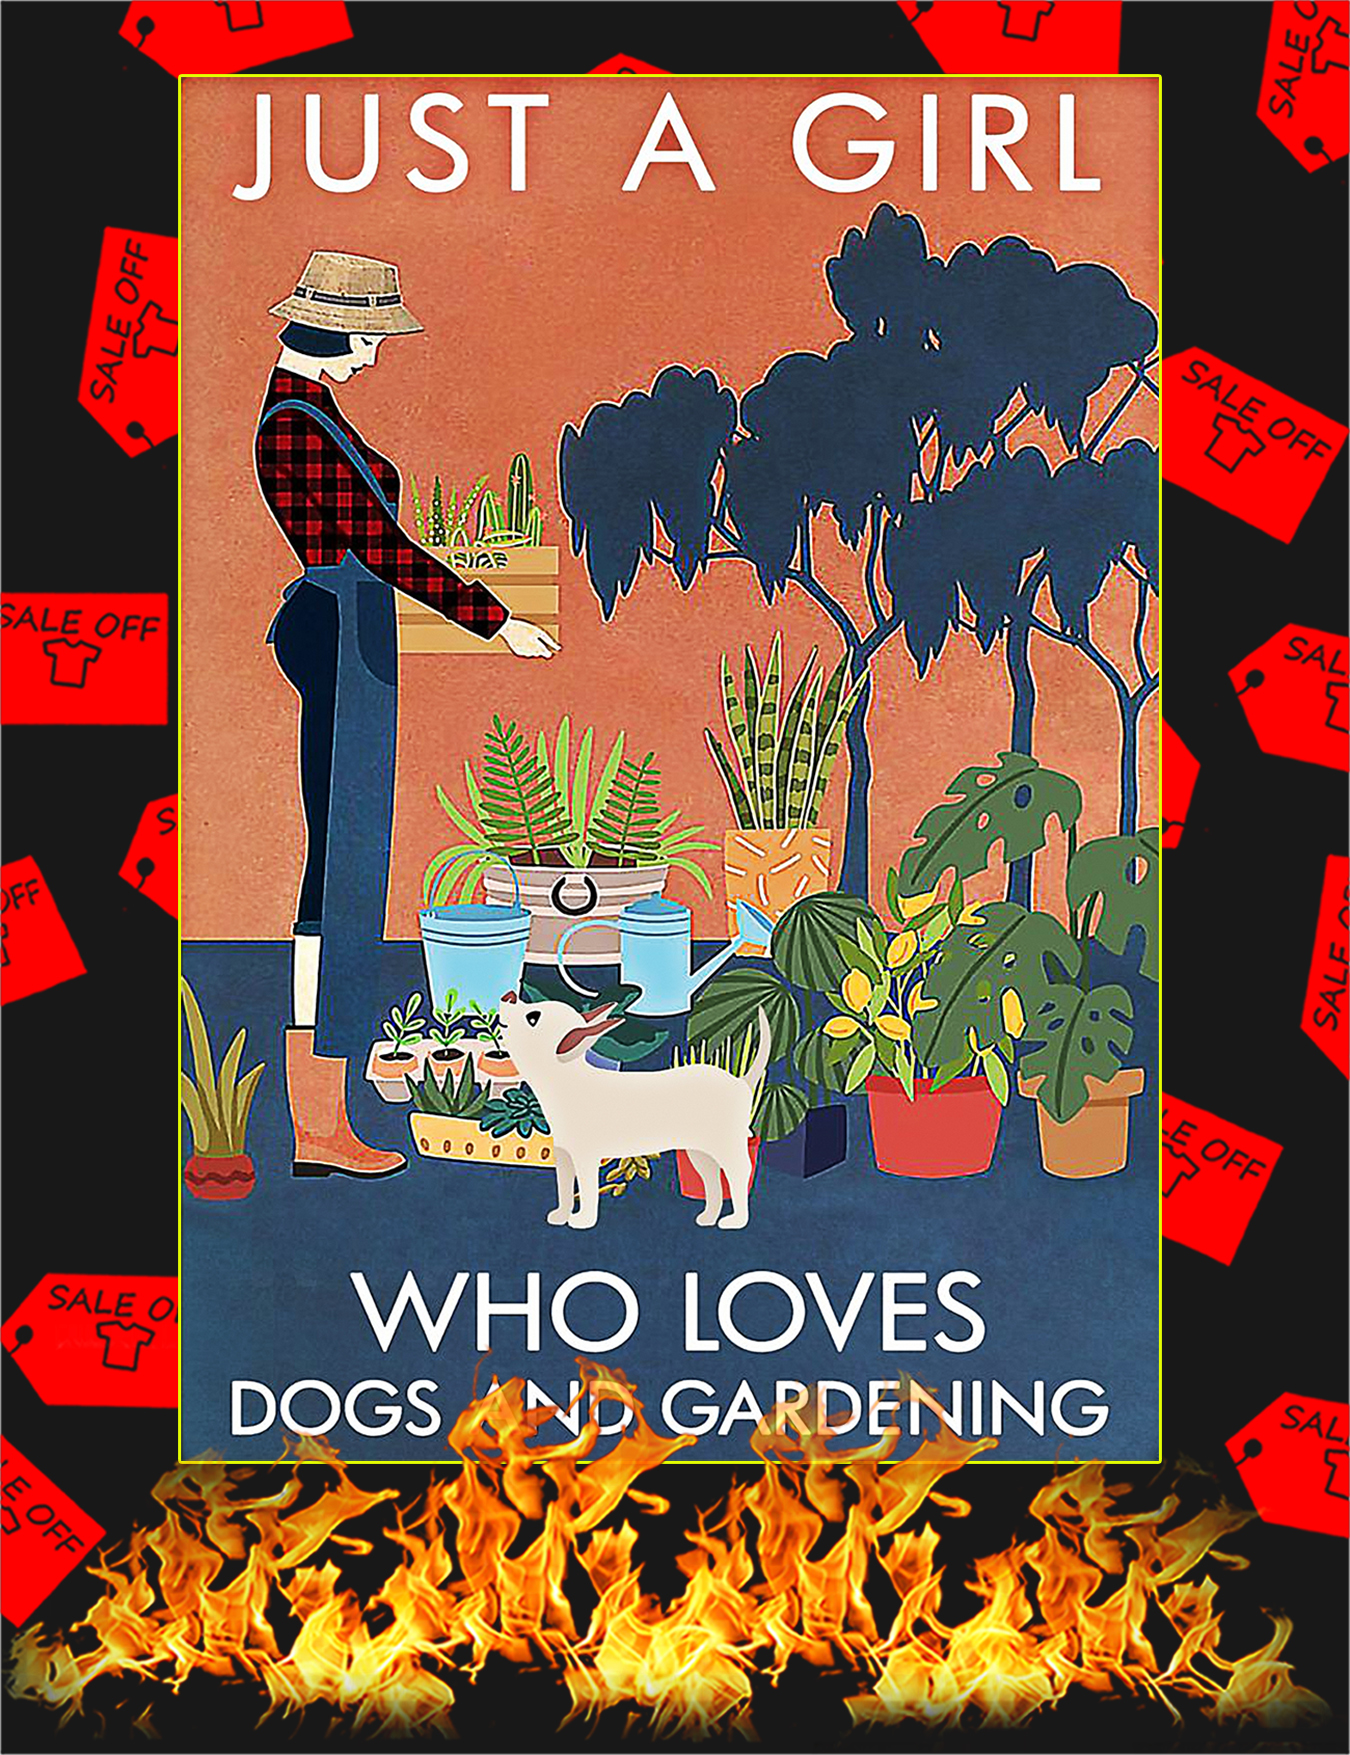 Just a girl who loves dogs and gardening poster - A2